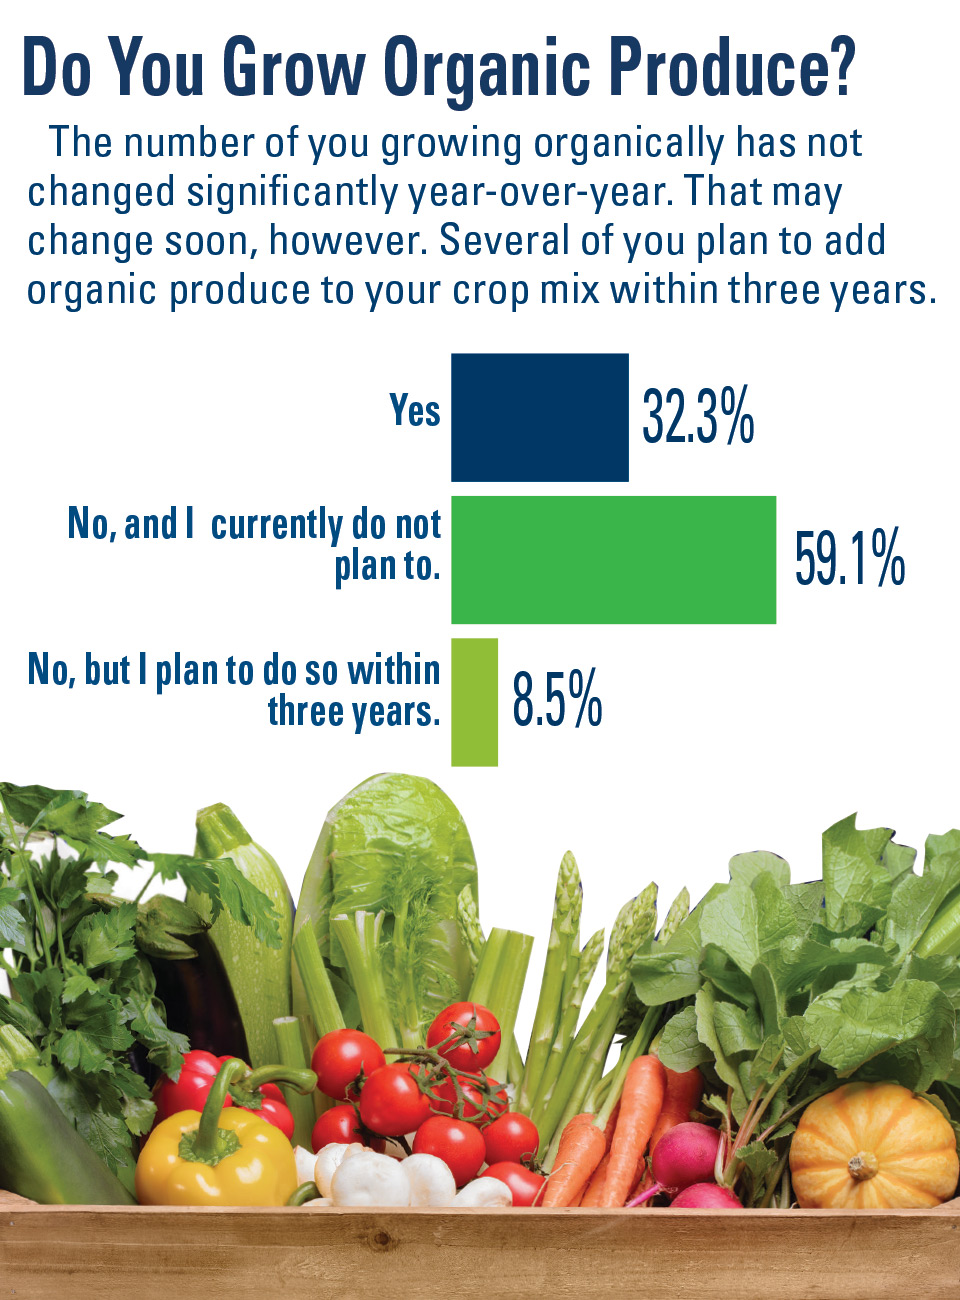 Do-You-Grow-Organic-Produce AVG SOI 2019